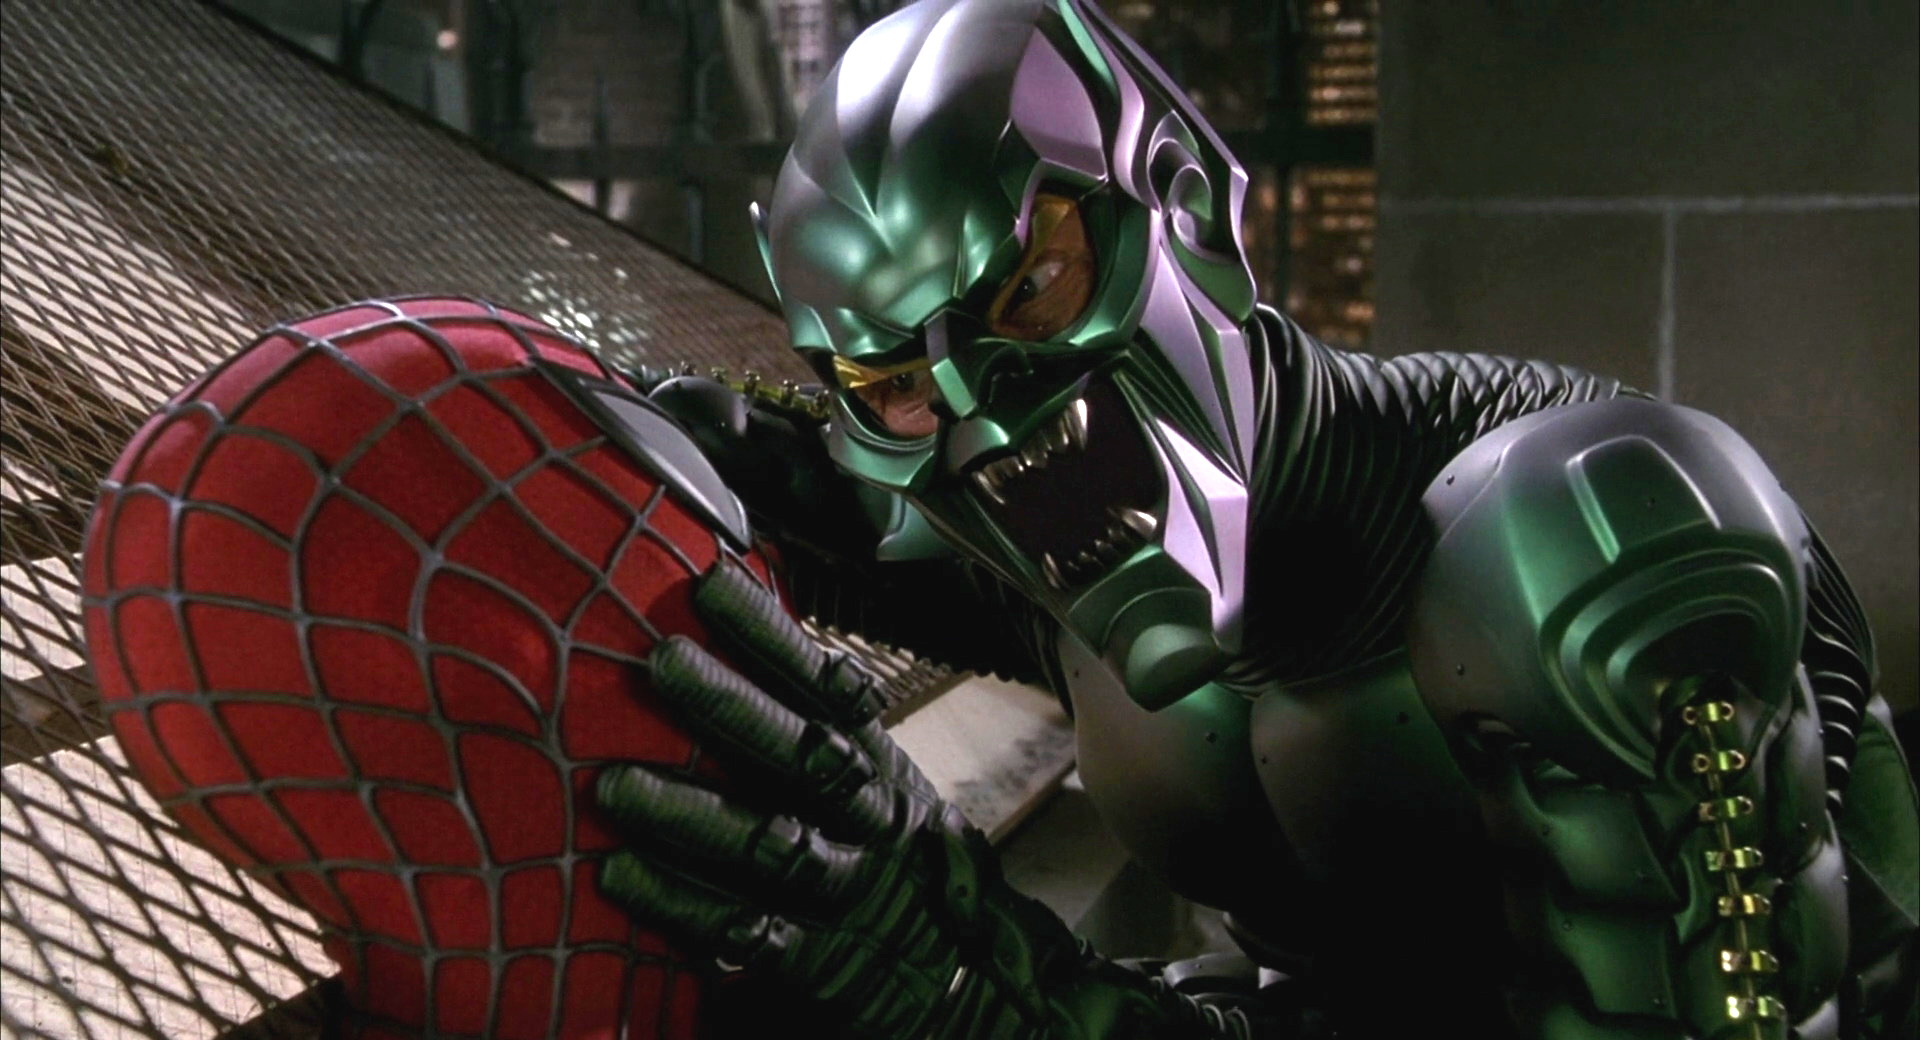 Green_Goblin_I_movie_h1.jpg